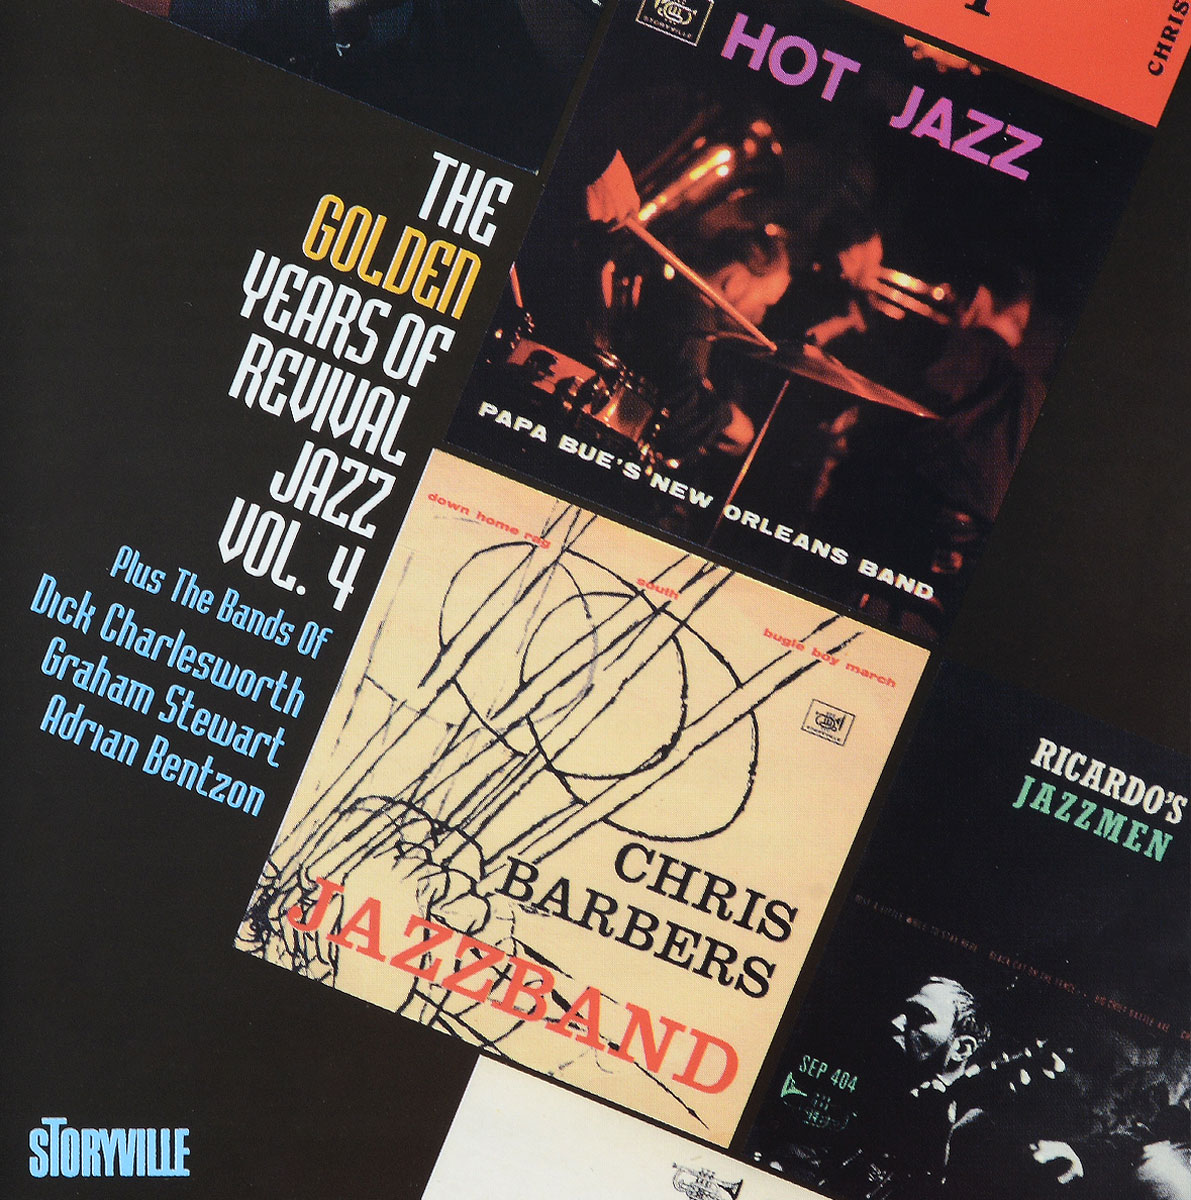 Chris Barber's Jazz Band,Papa Bues Viking Jazzband,Ricardo's Jazzmen,Dick Charlesworth And His City Gents,Adrian Bentzon's Jazzband,Graham Stewart And His New Orleans Band The Golden Years Of Revival Jazz. Vol. 4